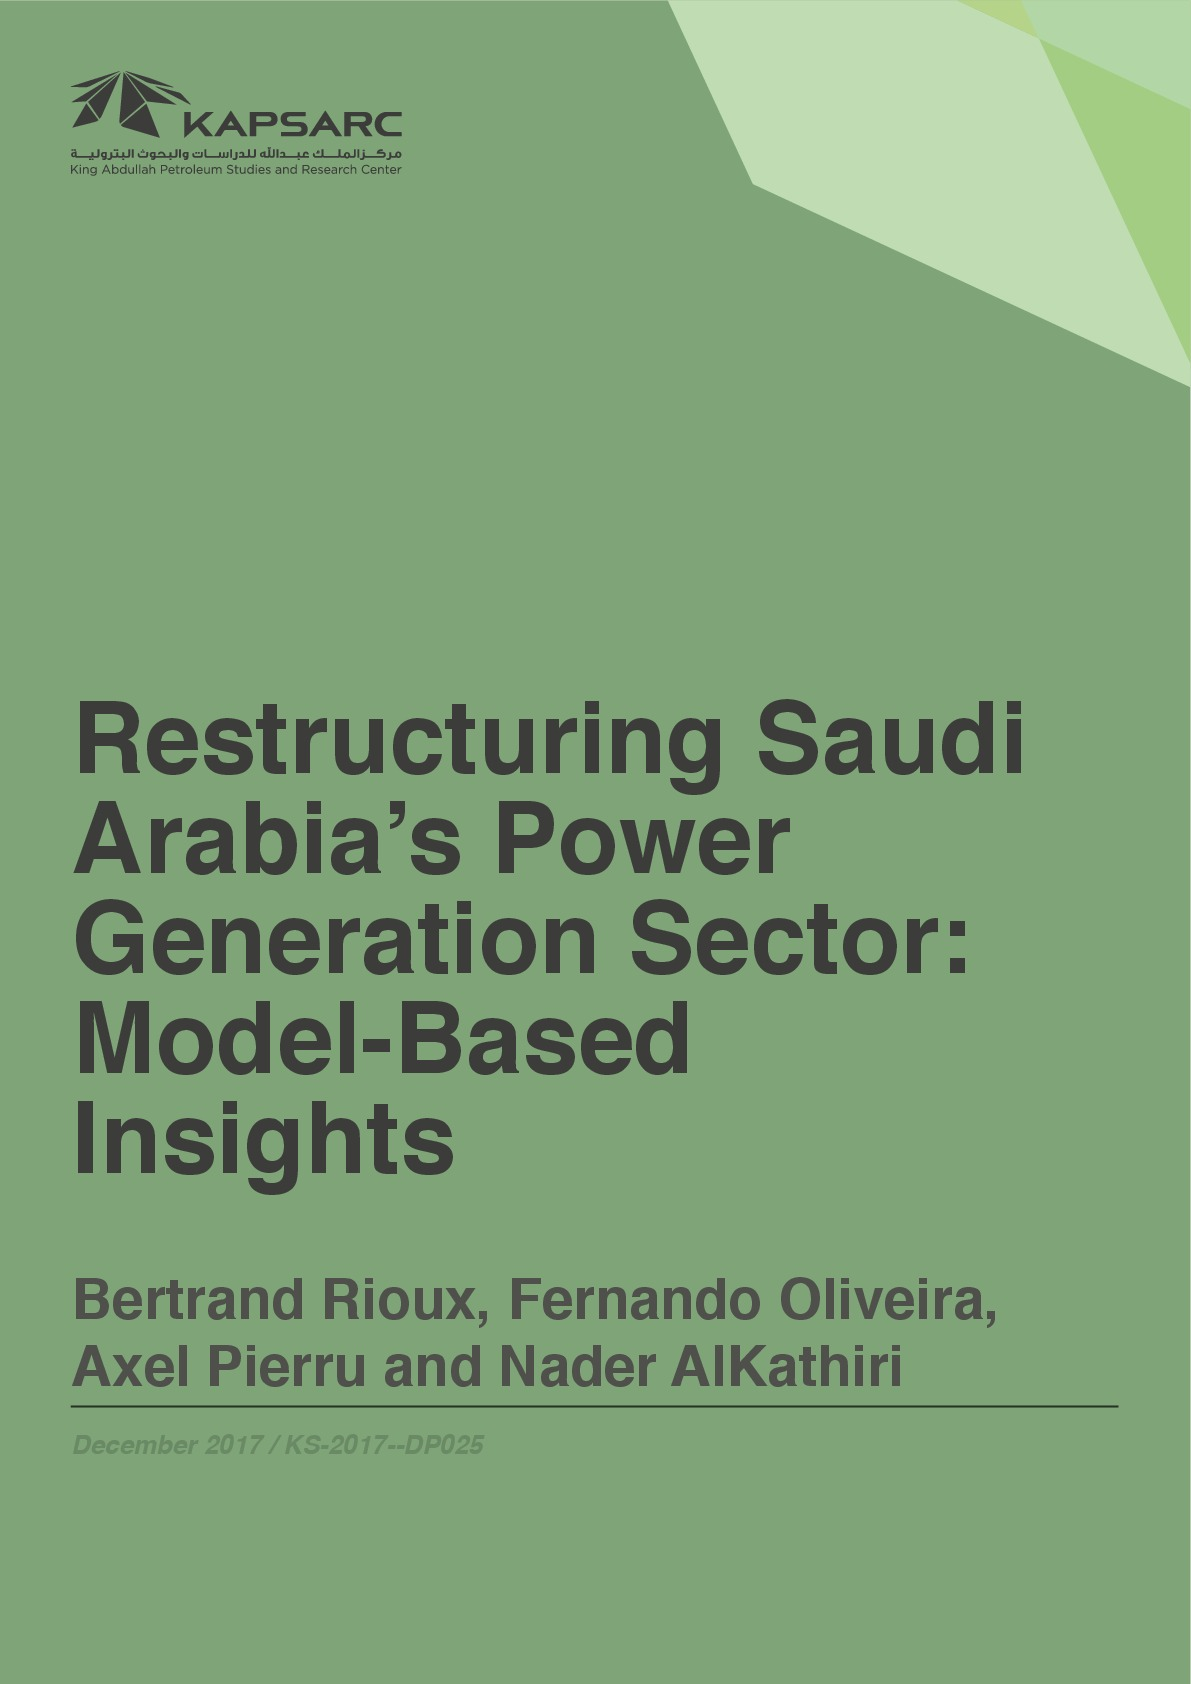 Restructuring Saudi Arabia's Power Generation Sector: Model-Based Insights